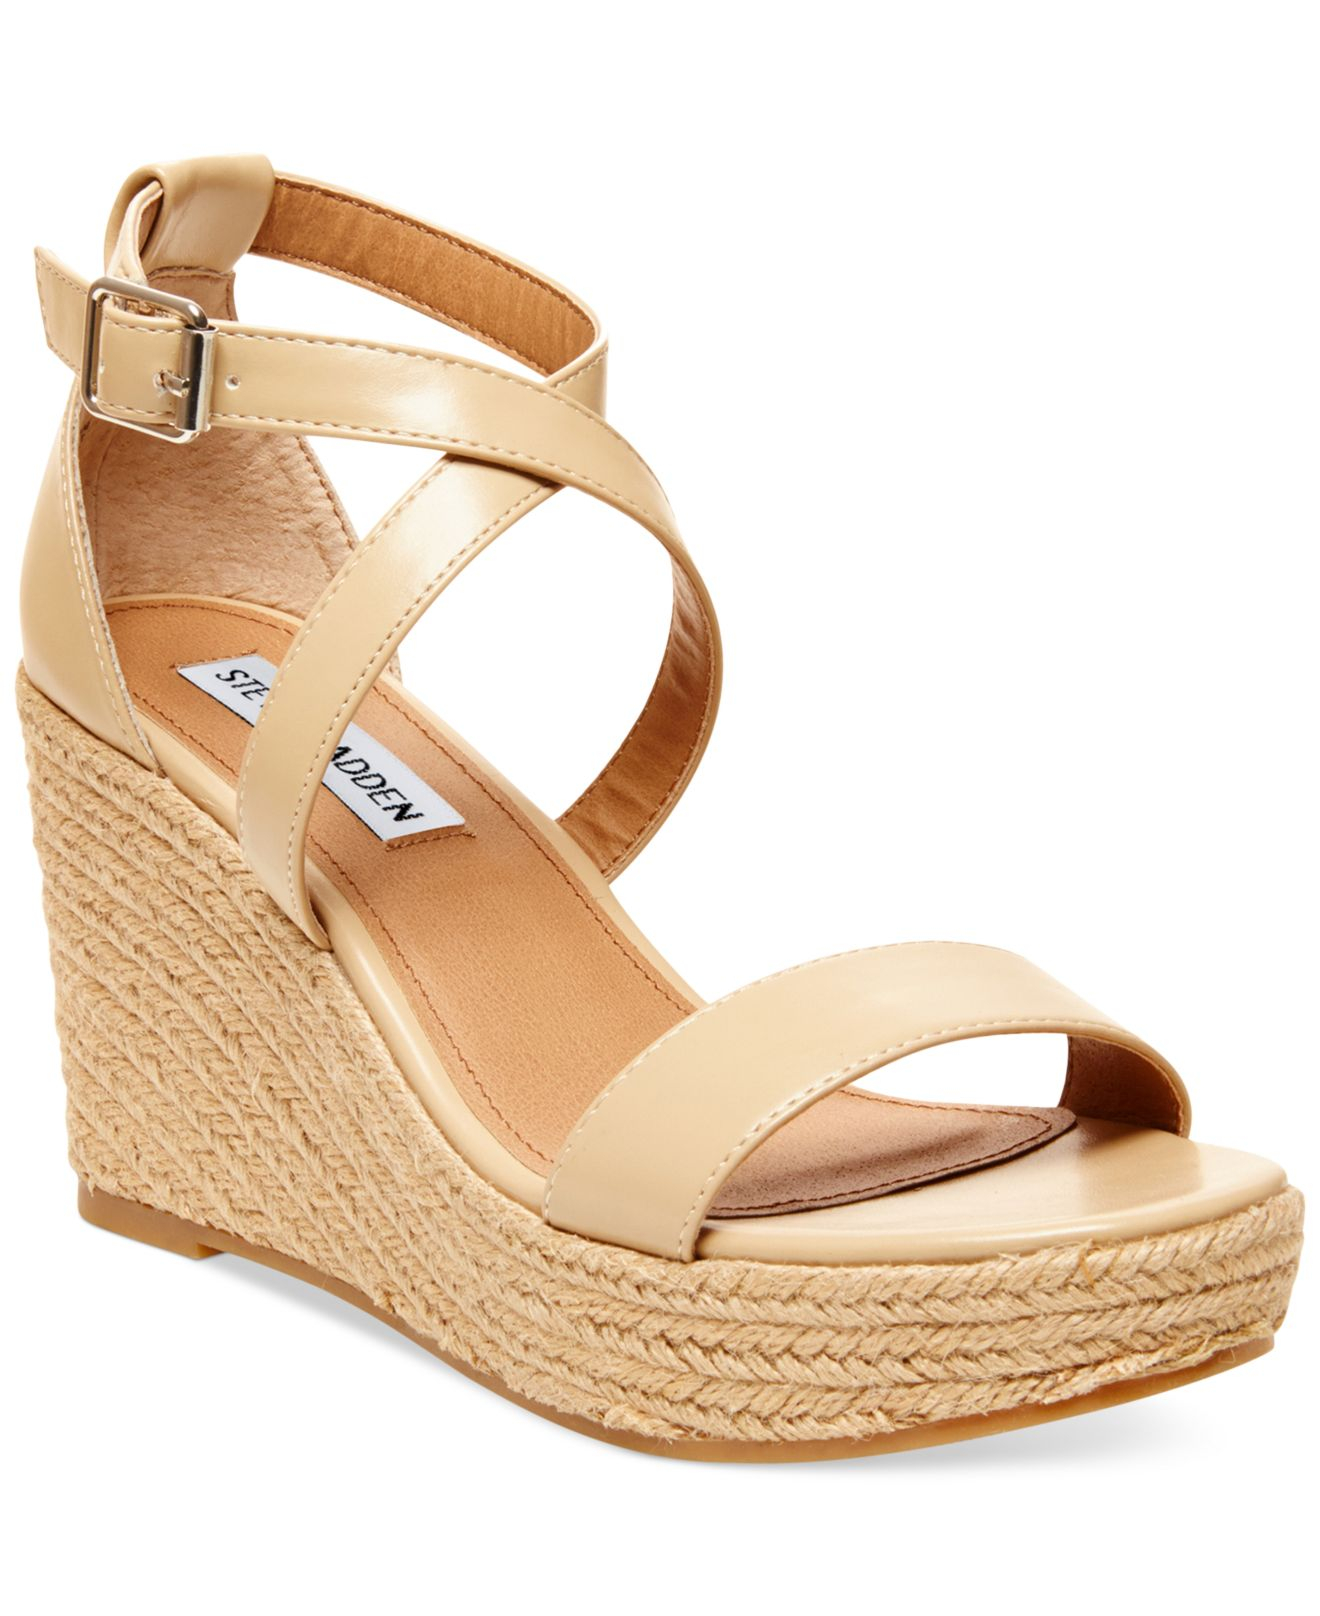 9e681afc77a7 Lyst - Steve Madden Women s Montaukk Platform Wedge Sandals in Natural